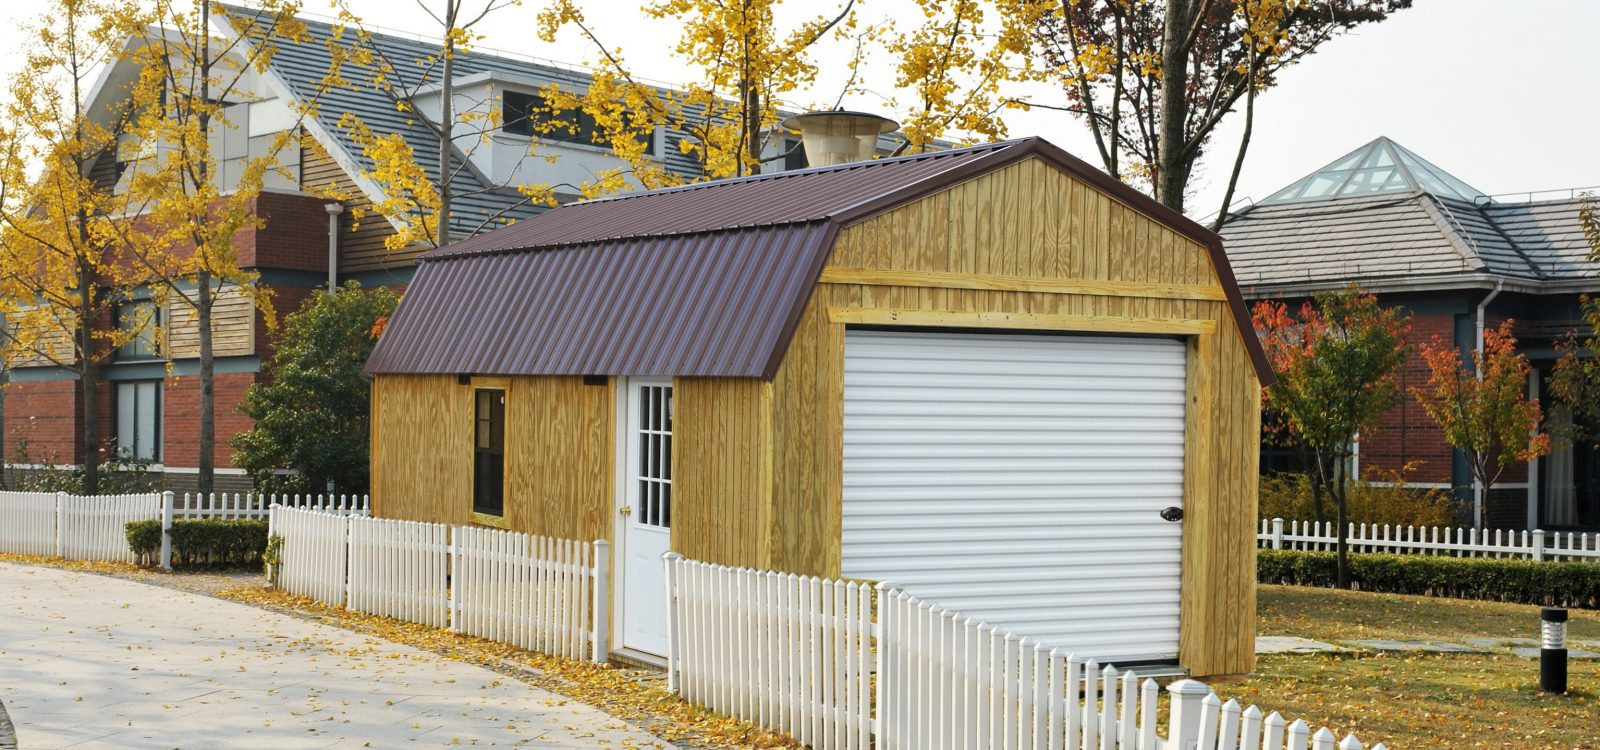 wooden-storage-sheds-and-garages